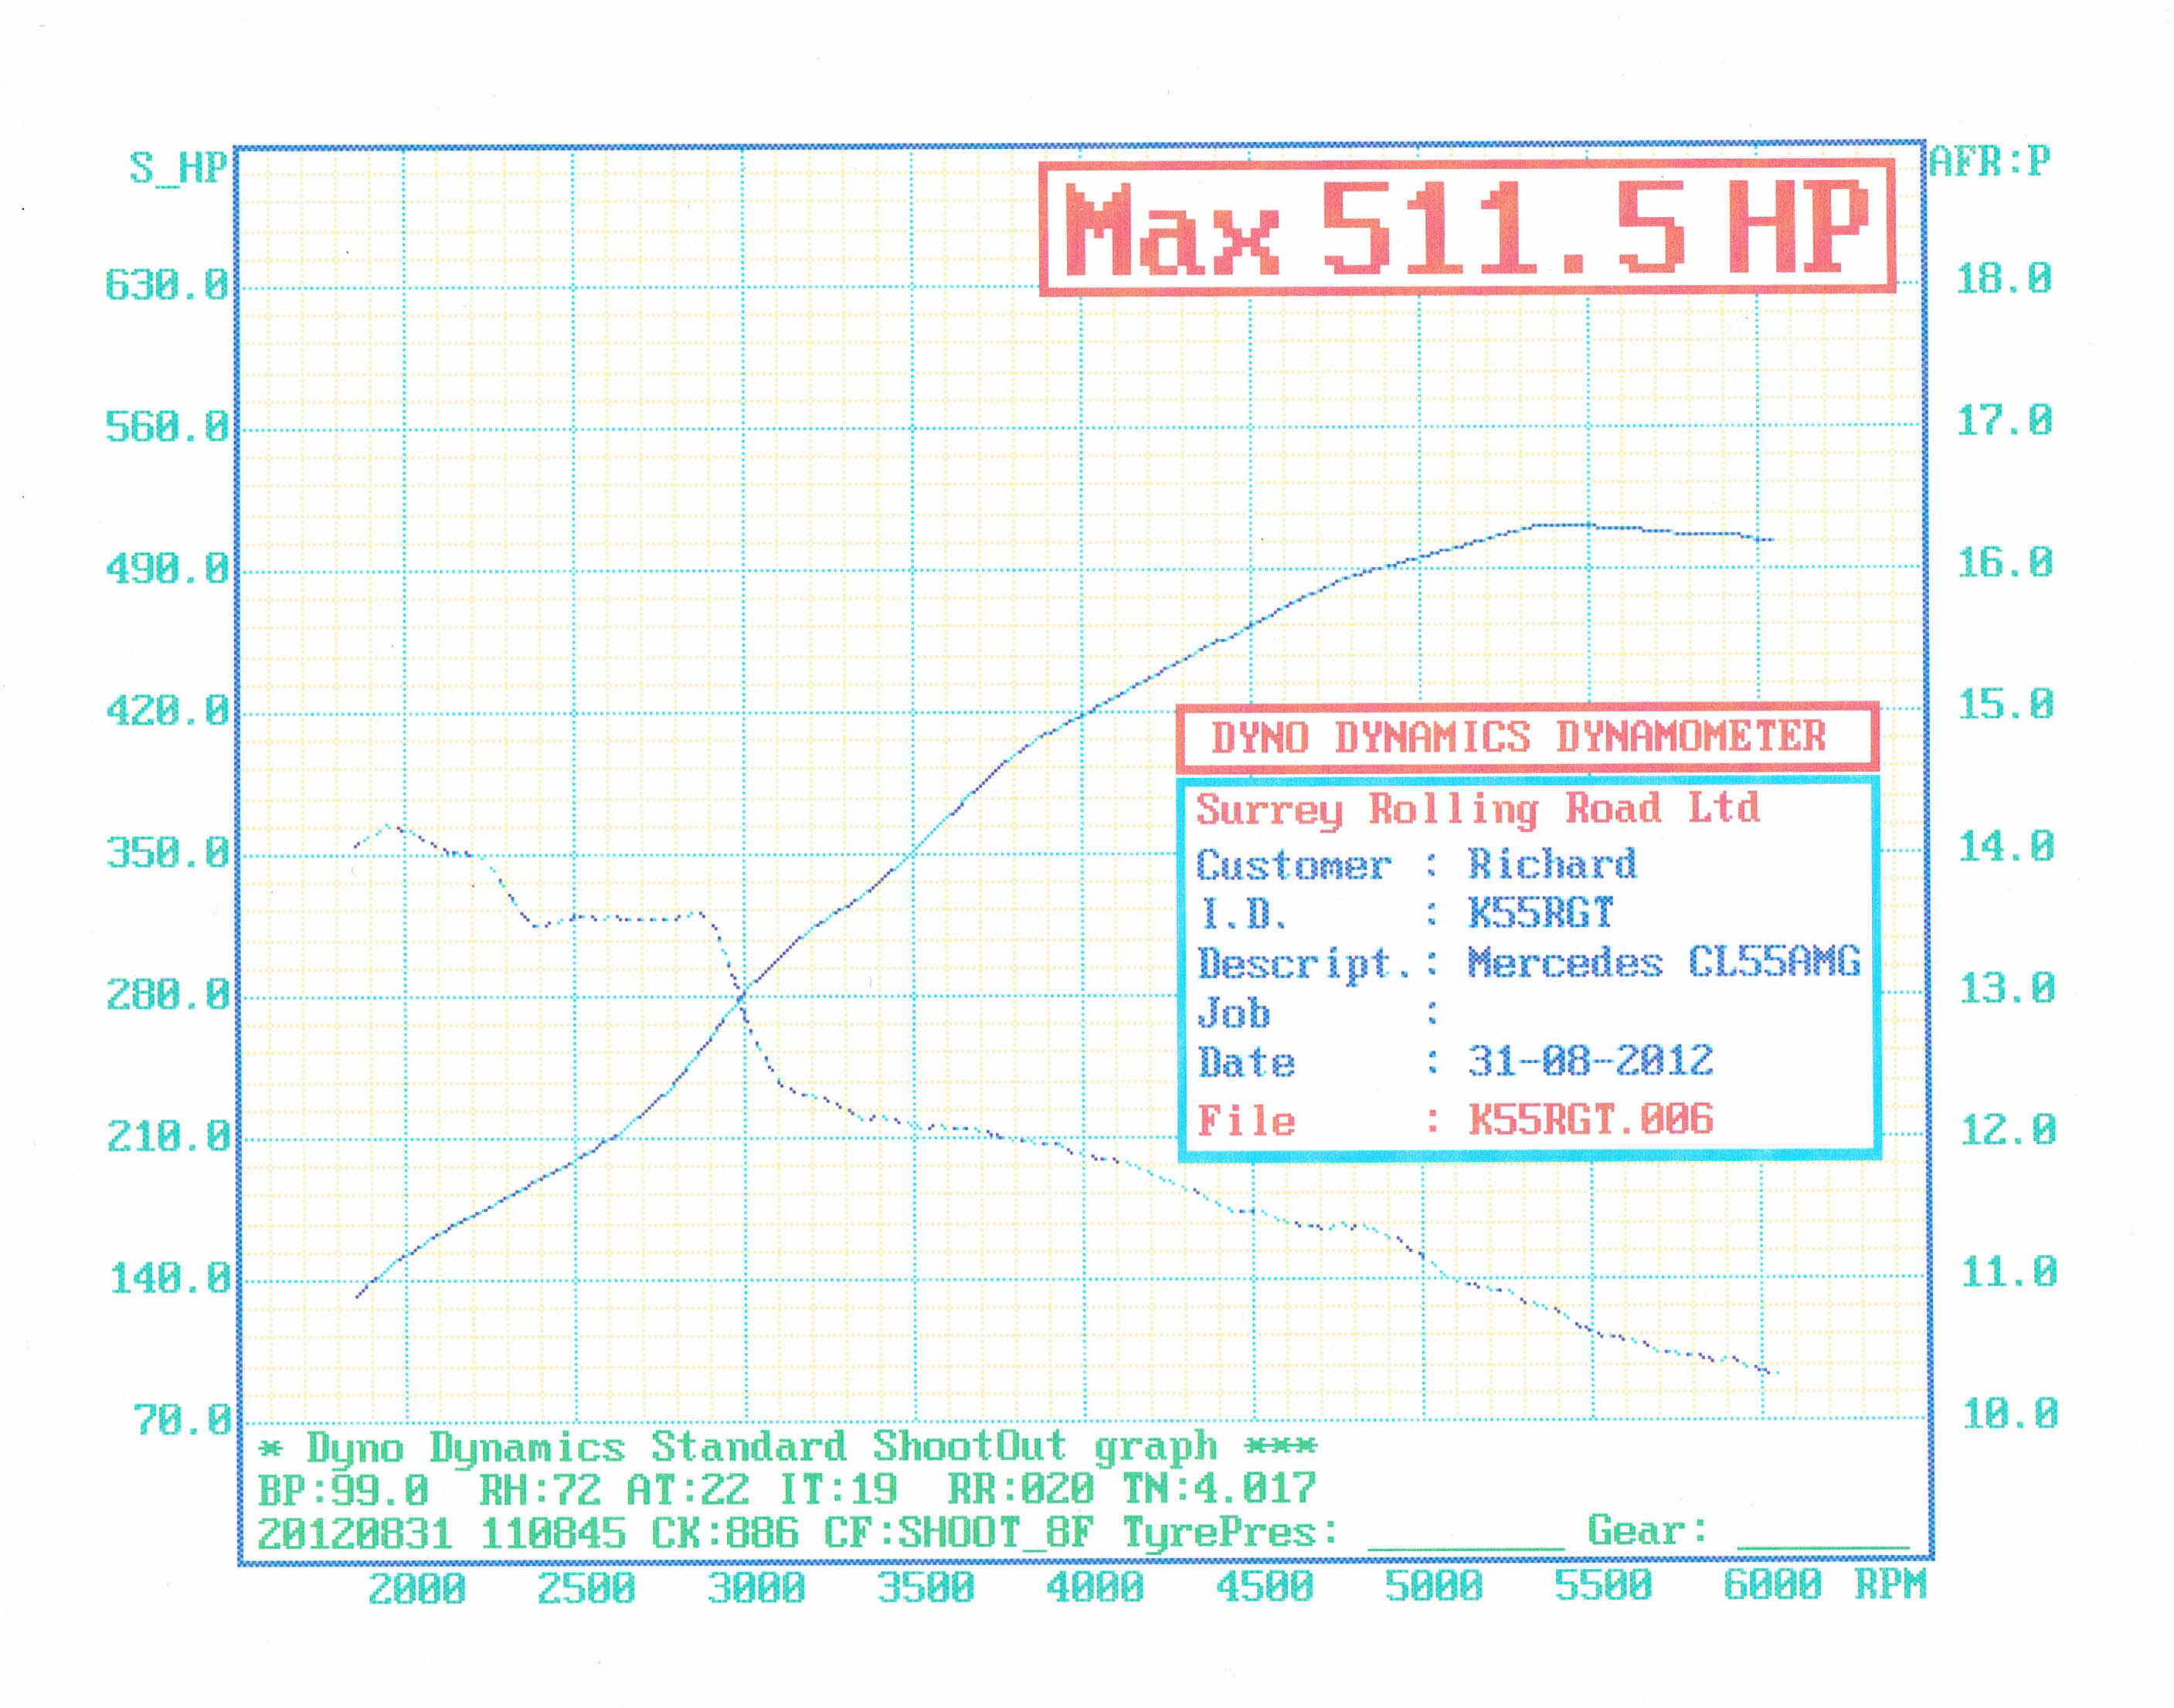 Mercedes-Benz CLK55 AMG Dyno Graph Results